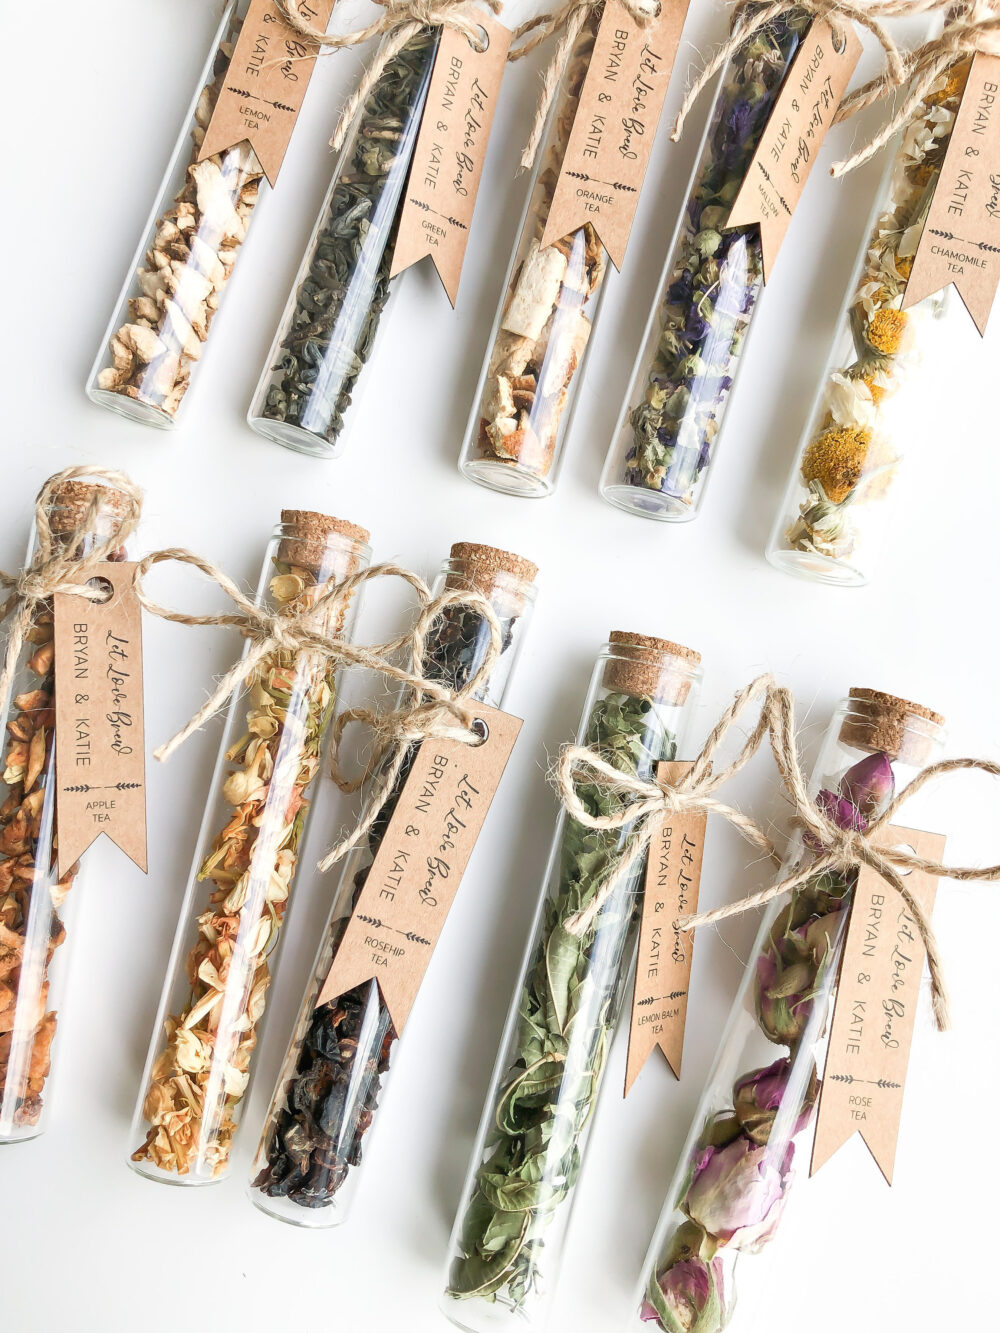 Wedding Tea Favors For Guests, Bulk Test Tube, Rustic Wedding Favor, Personalized Favors, Custom Bonbonniere, Showers Thank You Gift